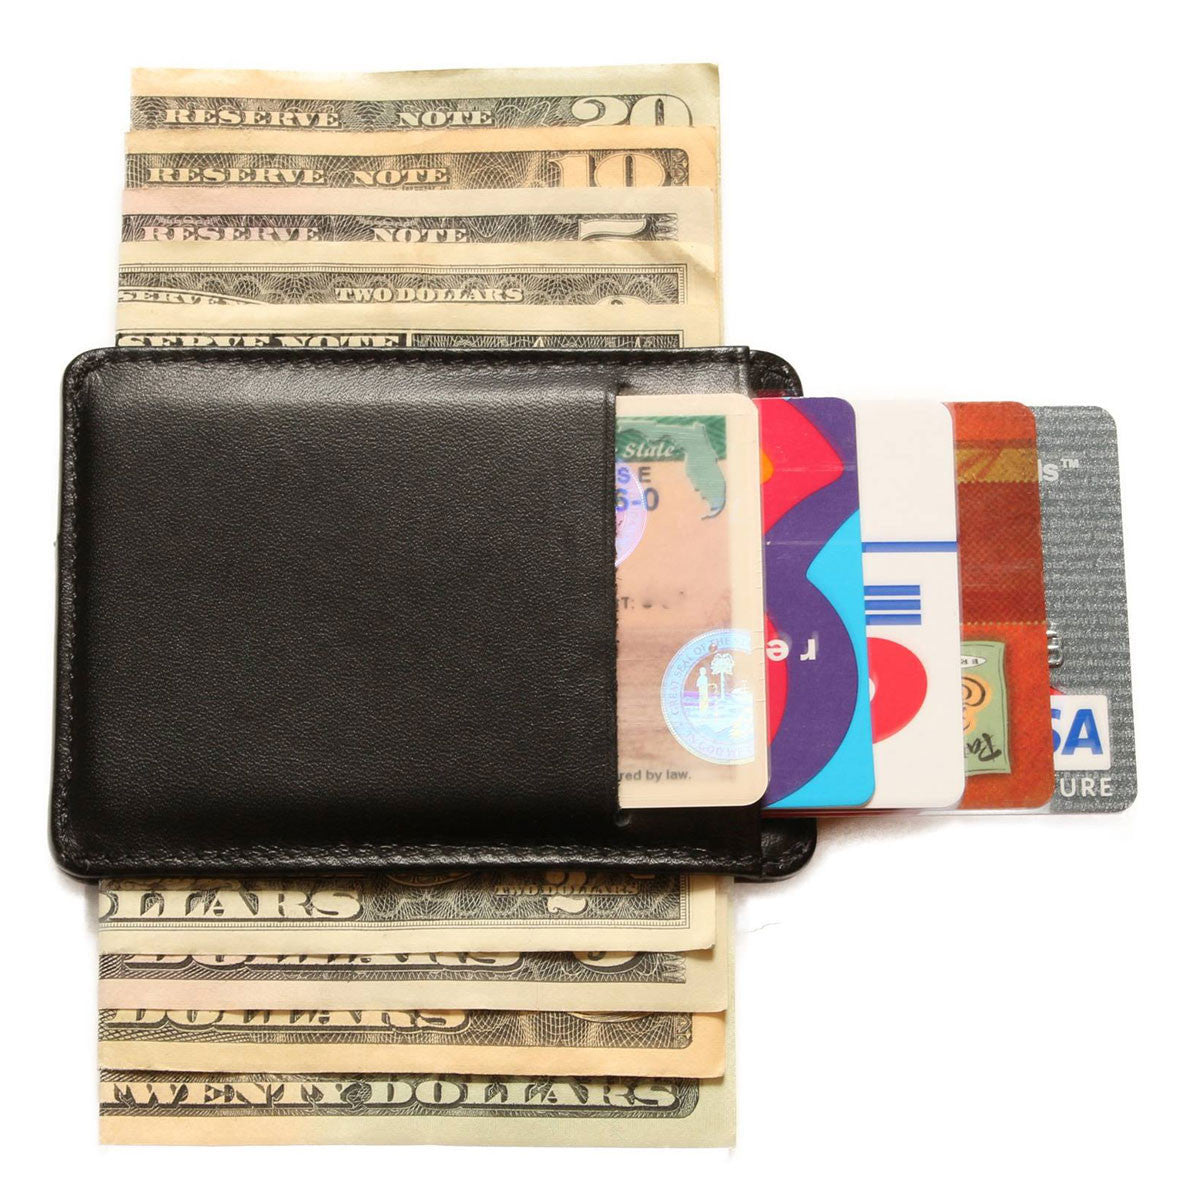 Tyni Wallet Ultra Slim Leather Wallet - Only £29.99 at www.TheFowndry.com